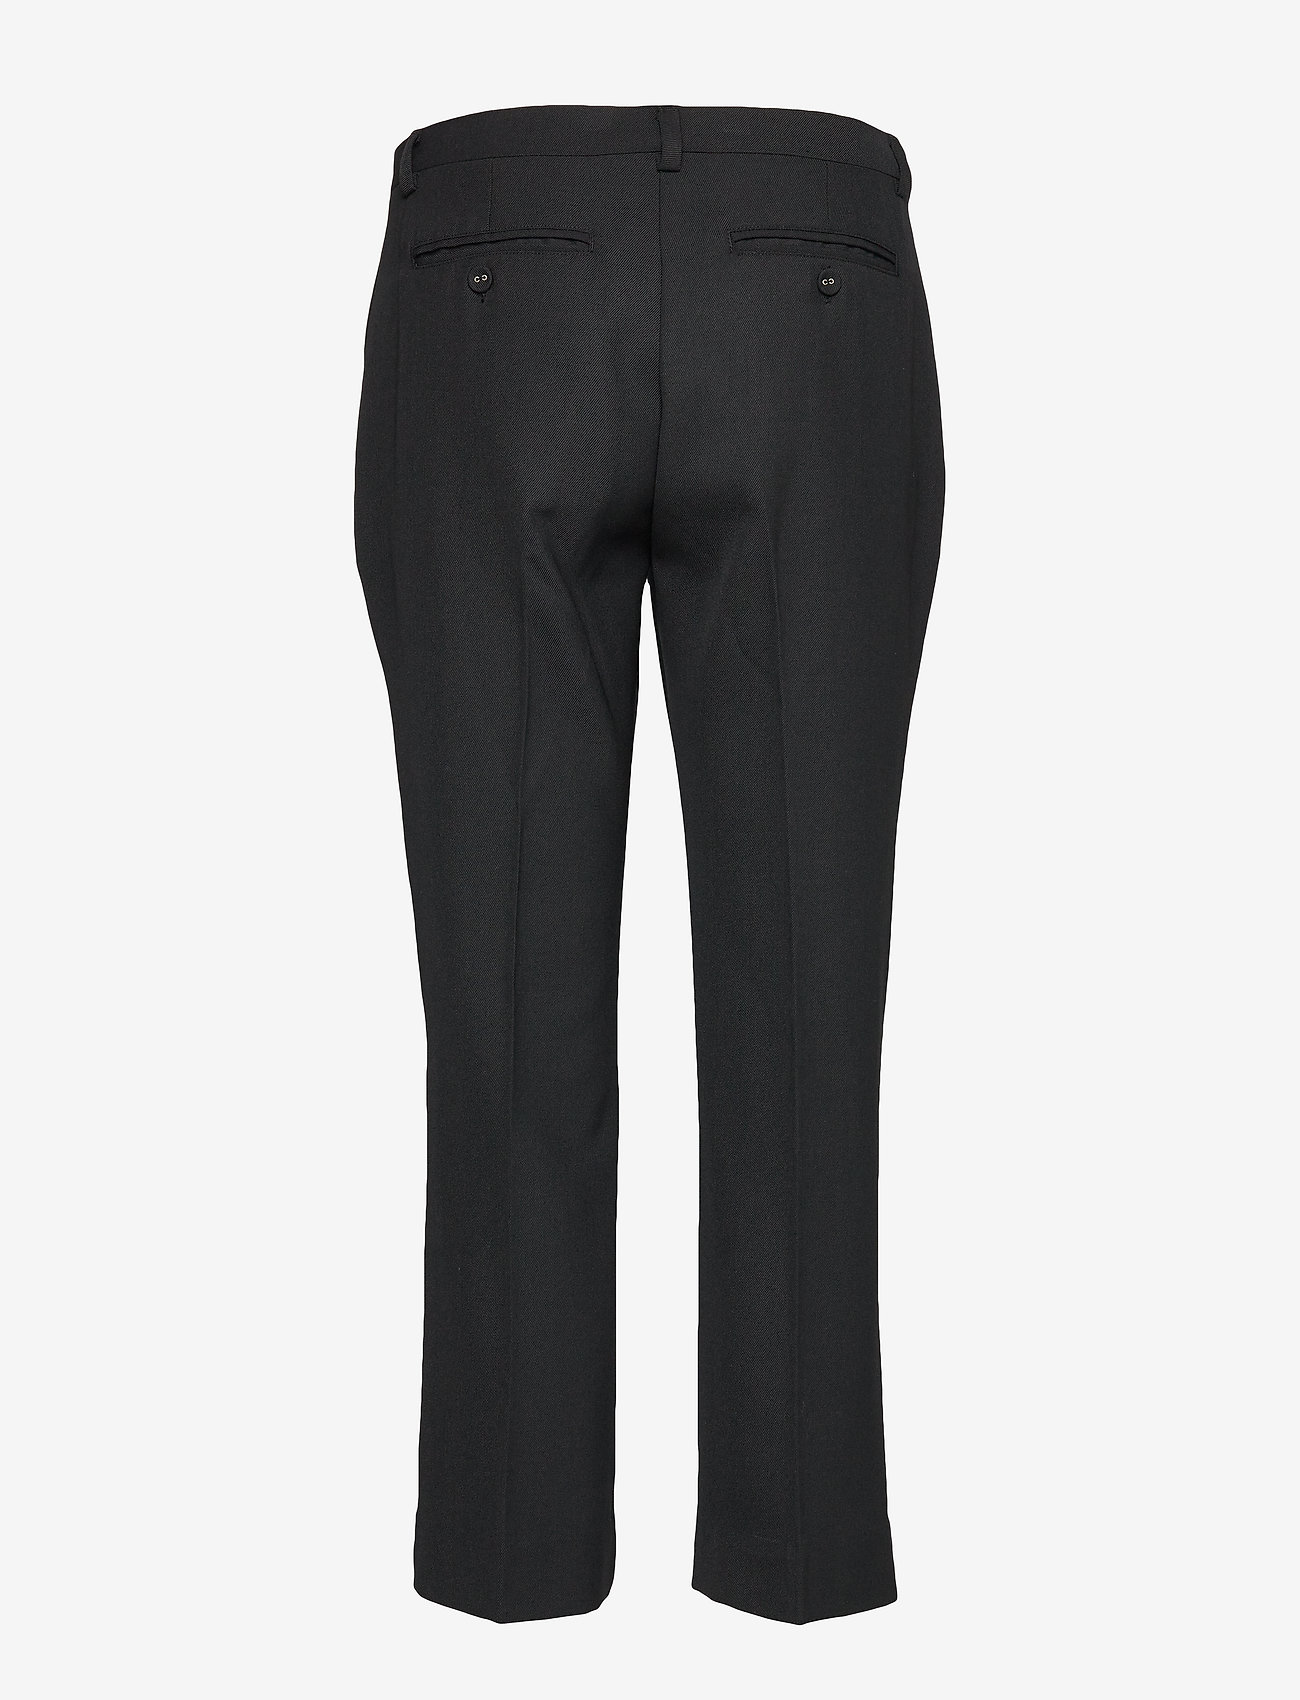 Whyred - CARNOT - straight leg trousers - black - 1